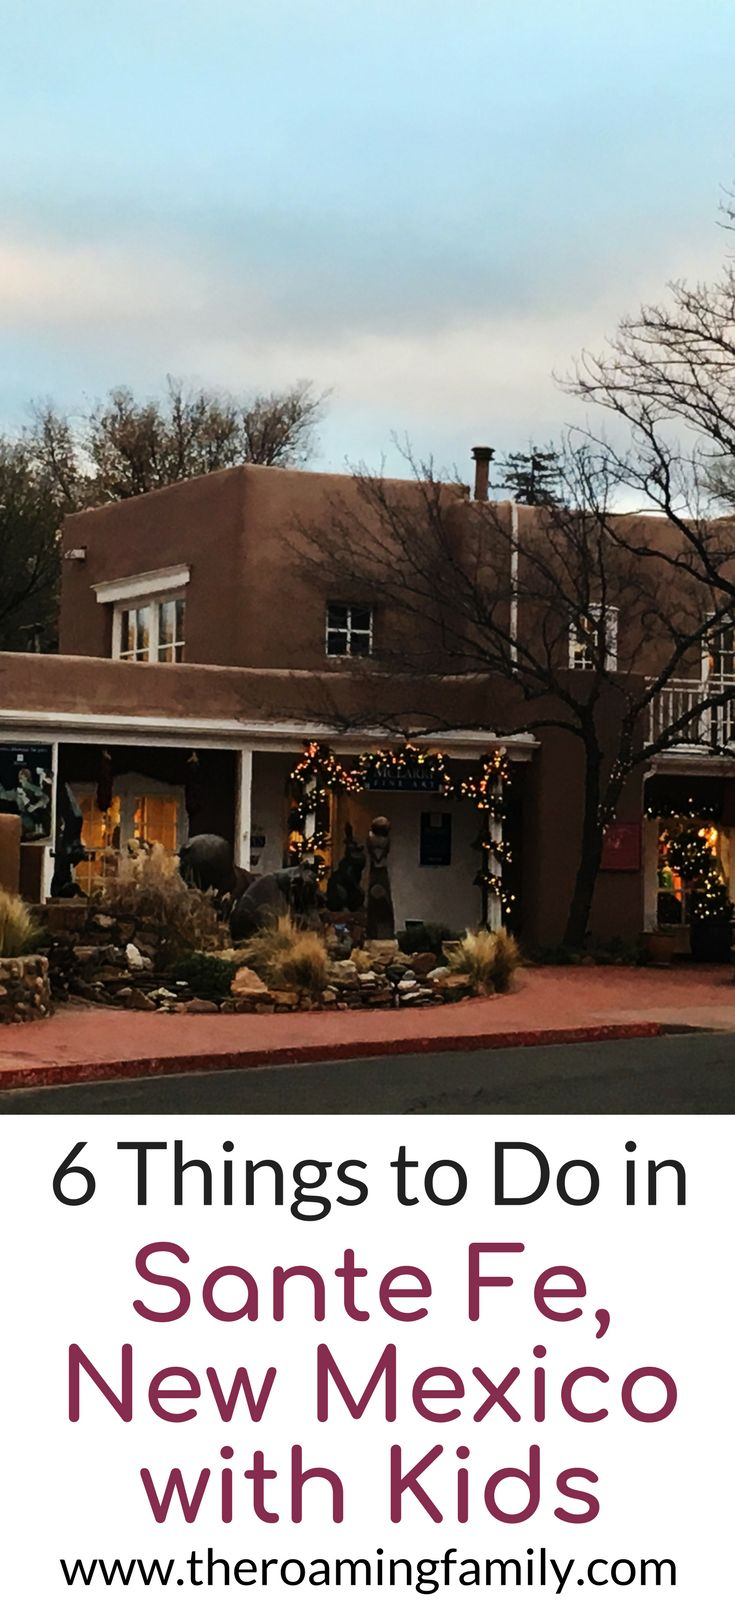 Are you heading to Santa Fe New Mexico on a family vacation? If so, you have to check out our family friendly Santa Fe travel guide. We will tell you the best things to do with kids in Santa Fe, where to eat in Santa Fe, things to see in Santa Fe, and much more. Come check out our kid friendly guide to Santa Fe and save it to your travel board to help you plan your trip.  #usatravel #santafenm #newmexico #familyvacation #familyblogger #familytravel #familytrips #familytripplanners